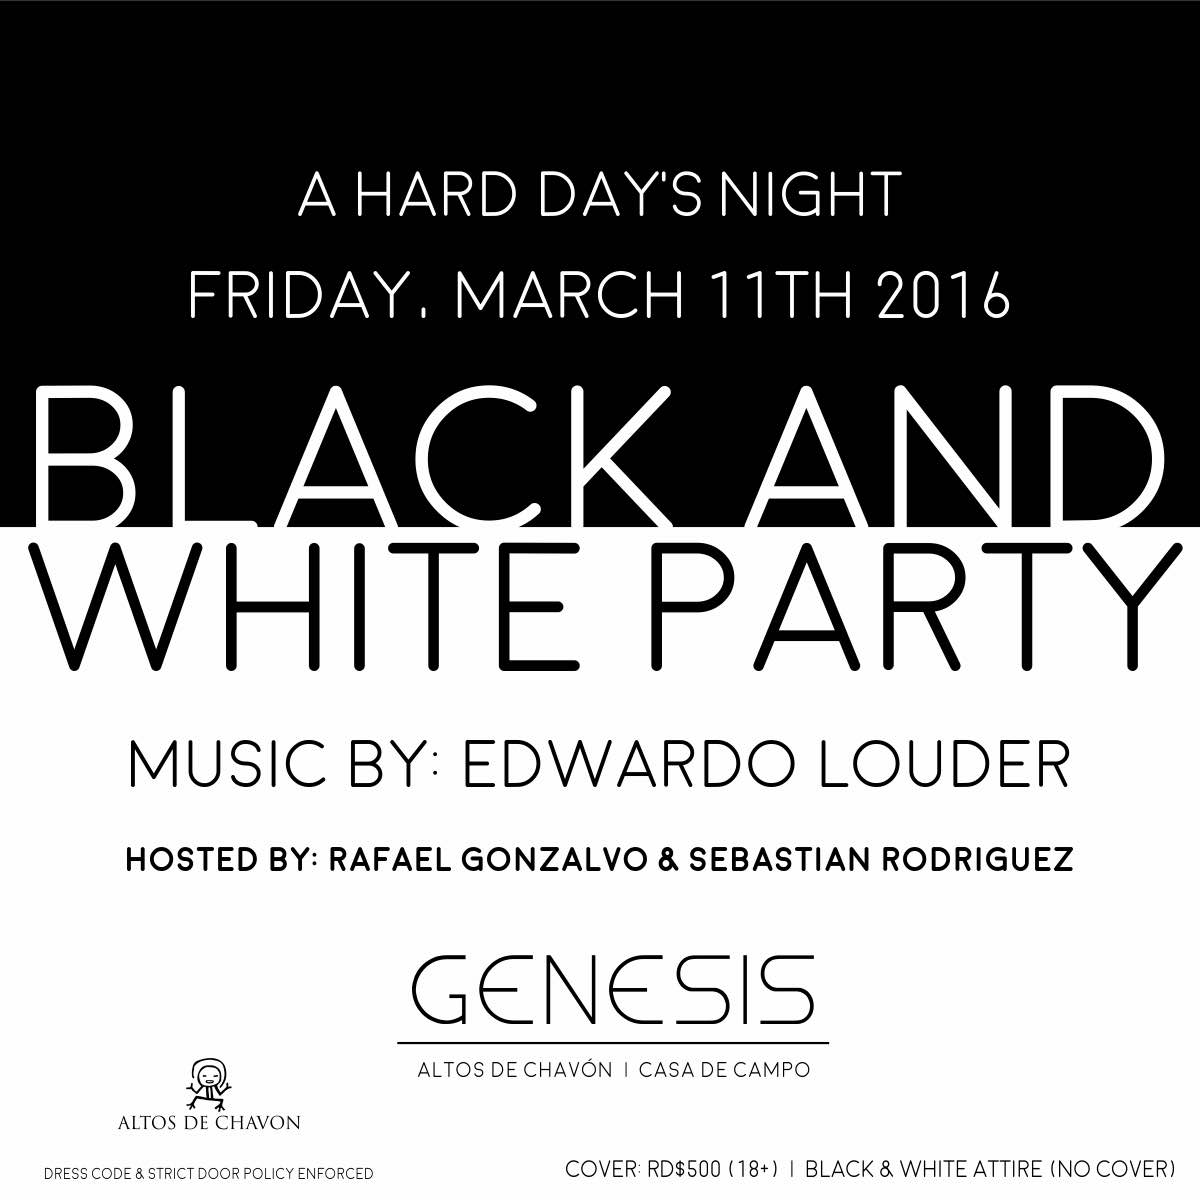 Genesis Black and White Party